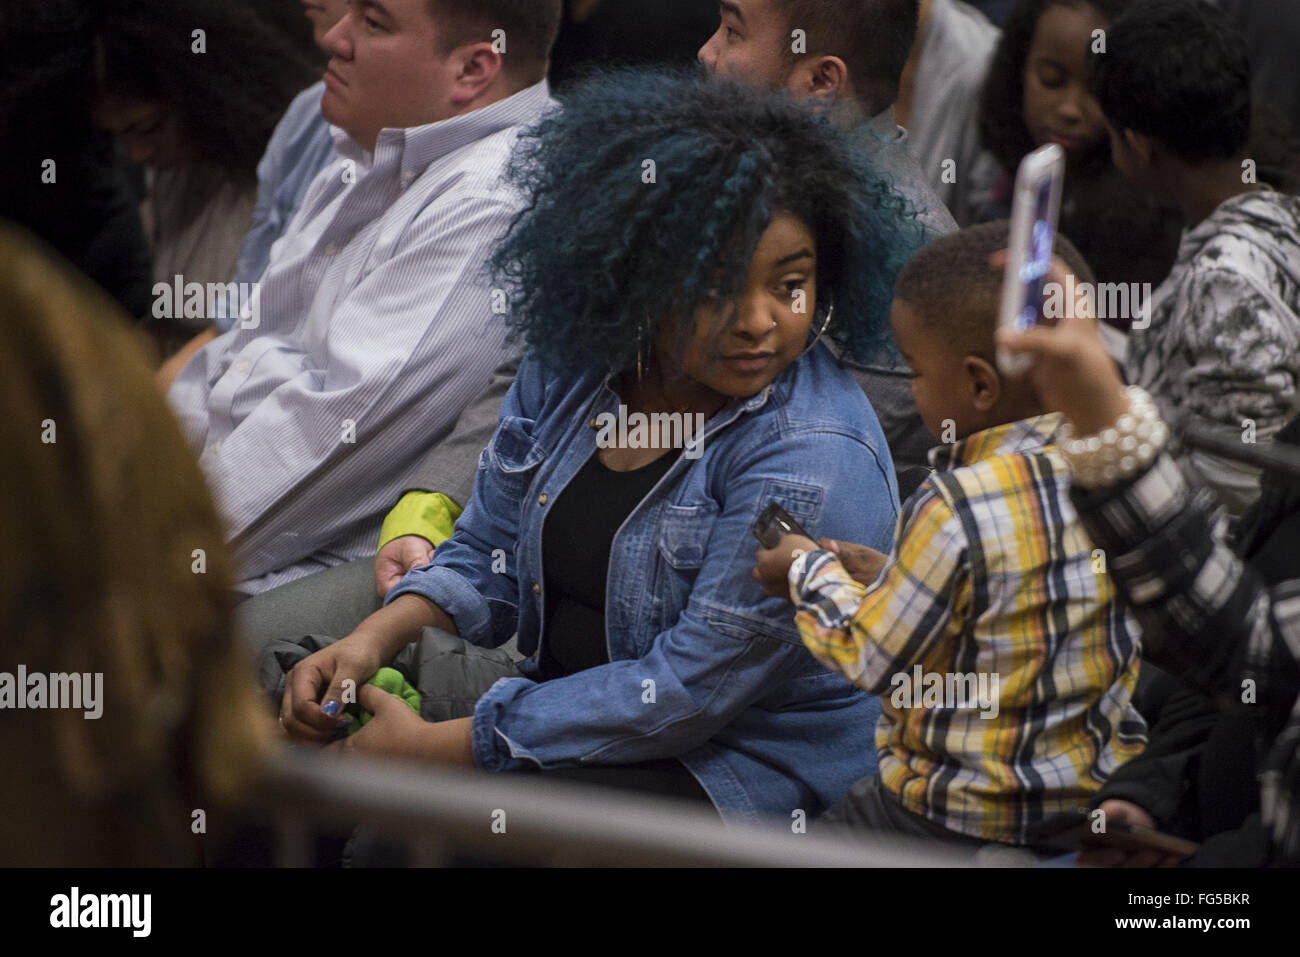 Minneapolis, Minnesota, USA. 13th Feb, 2016. A woman and a child in the audience at a Bernie Sanders campaign event. Senator Bernie Sanders of Vermont, who is seeking the Democratic Party nomination for president, attended the Black America Forum, sponsored by MN Neighborhoods Organizing for Change at Patrick Henry High School in the largely African-American neighborhood of North Minneapolis, Minnesota on Friday, February 12, 2016. After beating Hillary Clinton in the New Hampshire primary earlier in the week, Sen. Sanders began campaigning in earnest for minority voters, who will b Stock Photo